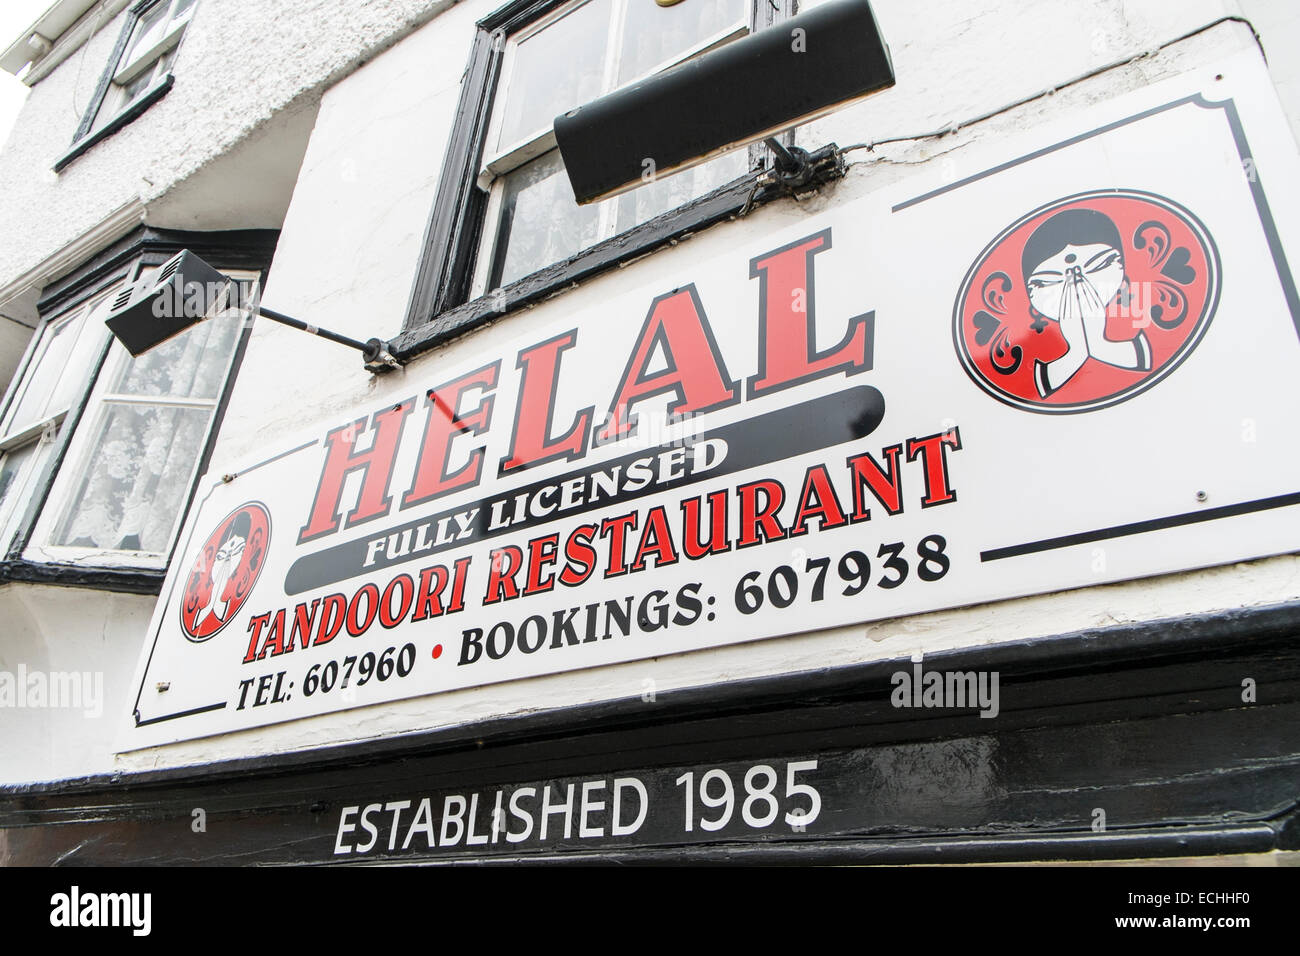 c6b1ff421e2 Helal restaurant food sign Indian food served dining Louth Lincolnshire shop  entrance - Stock Image